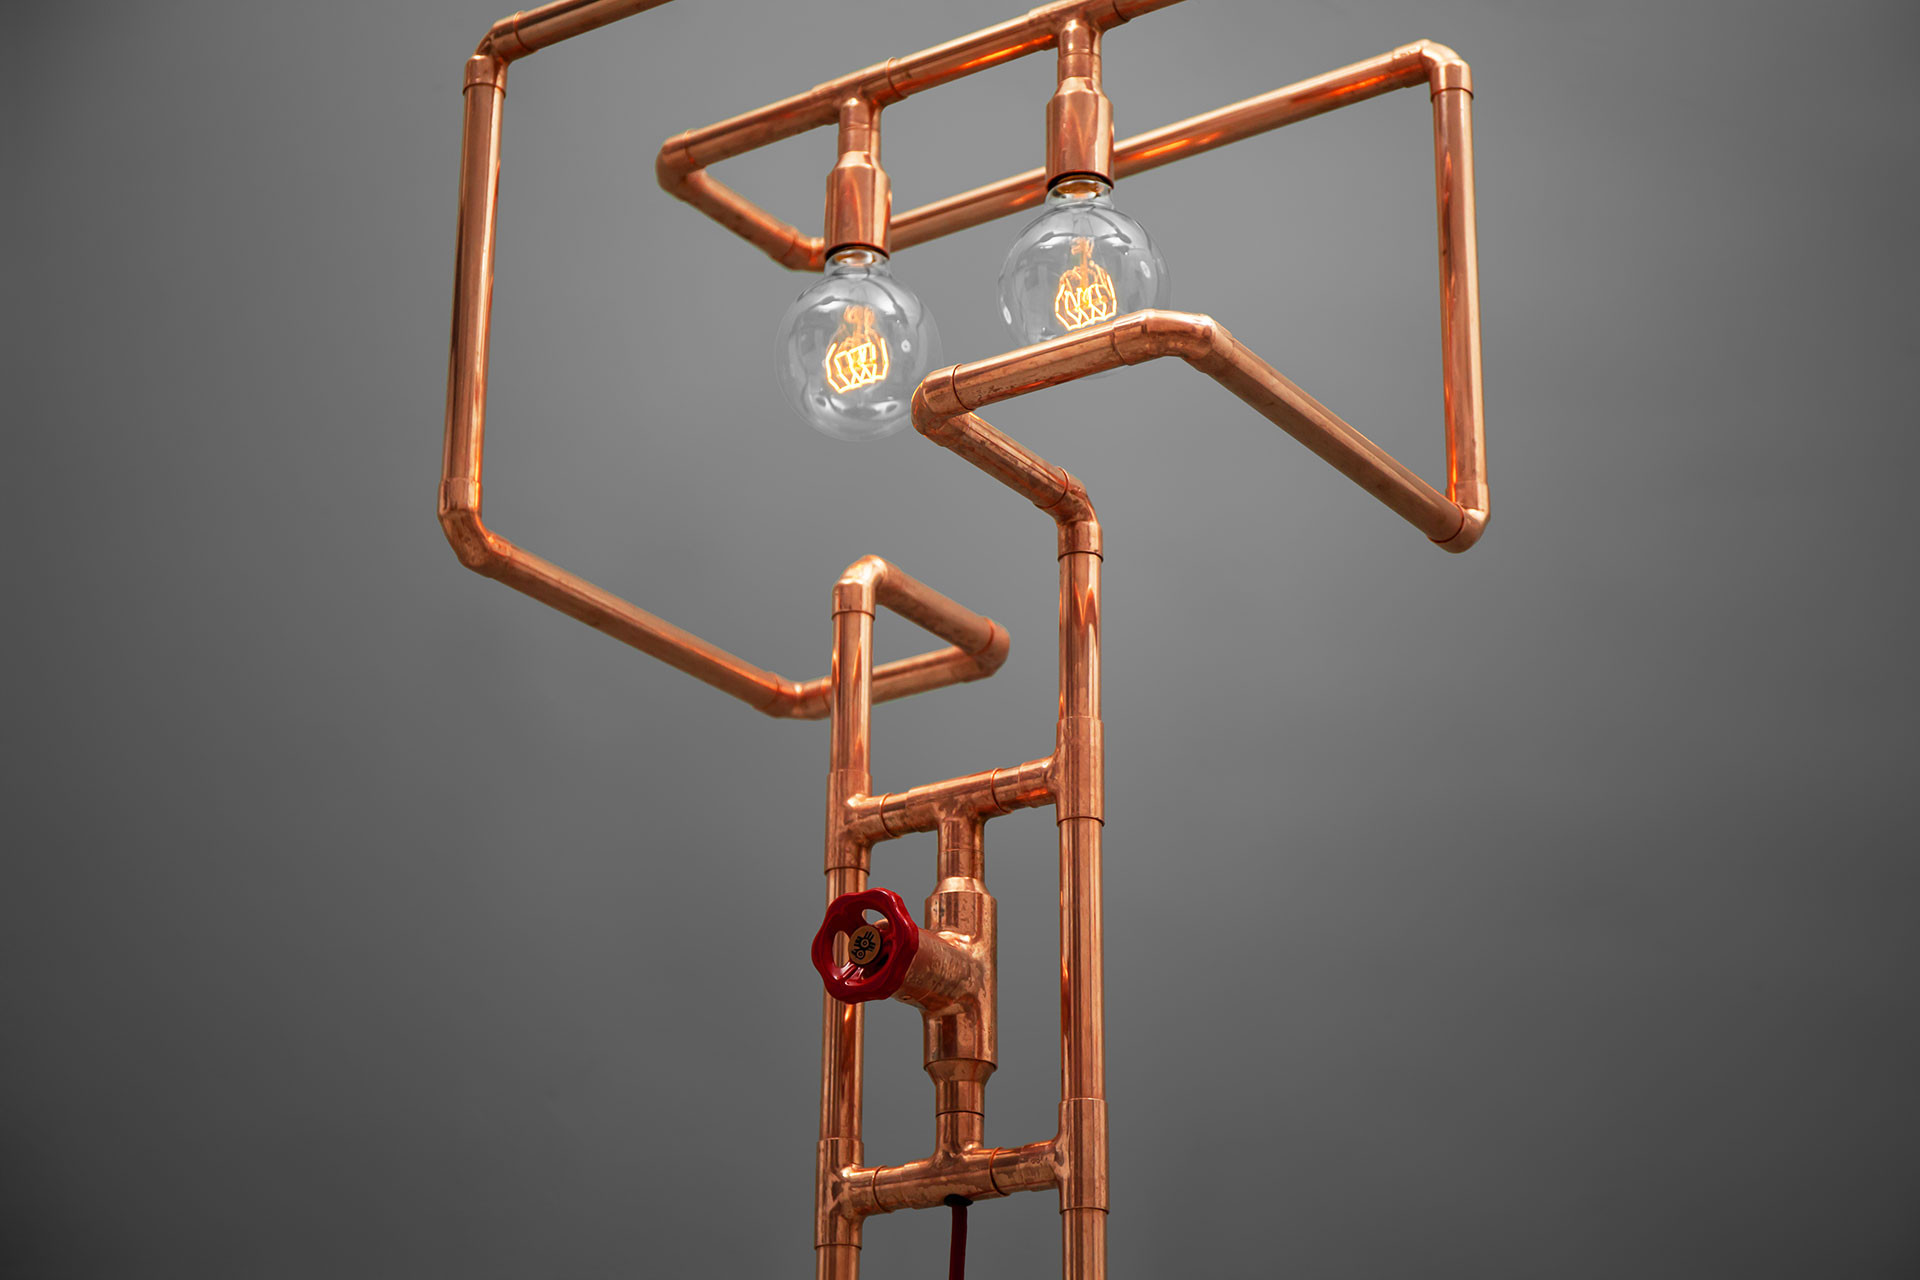 Creative design floor lamp in trendy copper or modern brass inspired by pipes installation